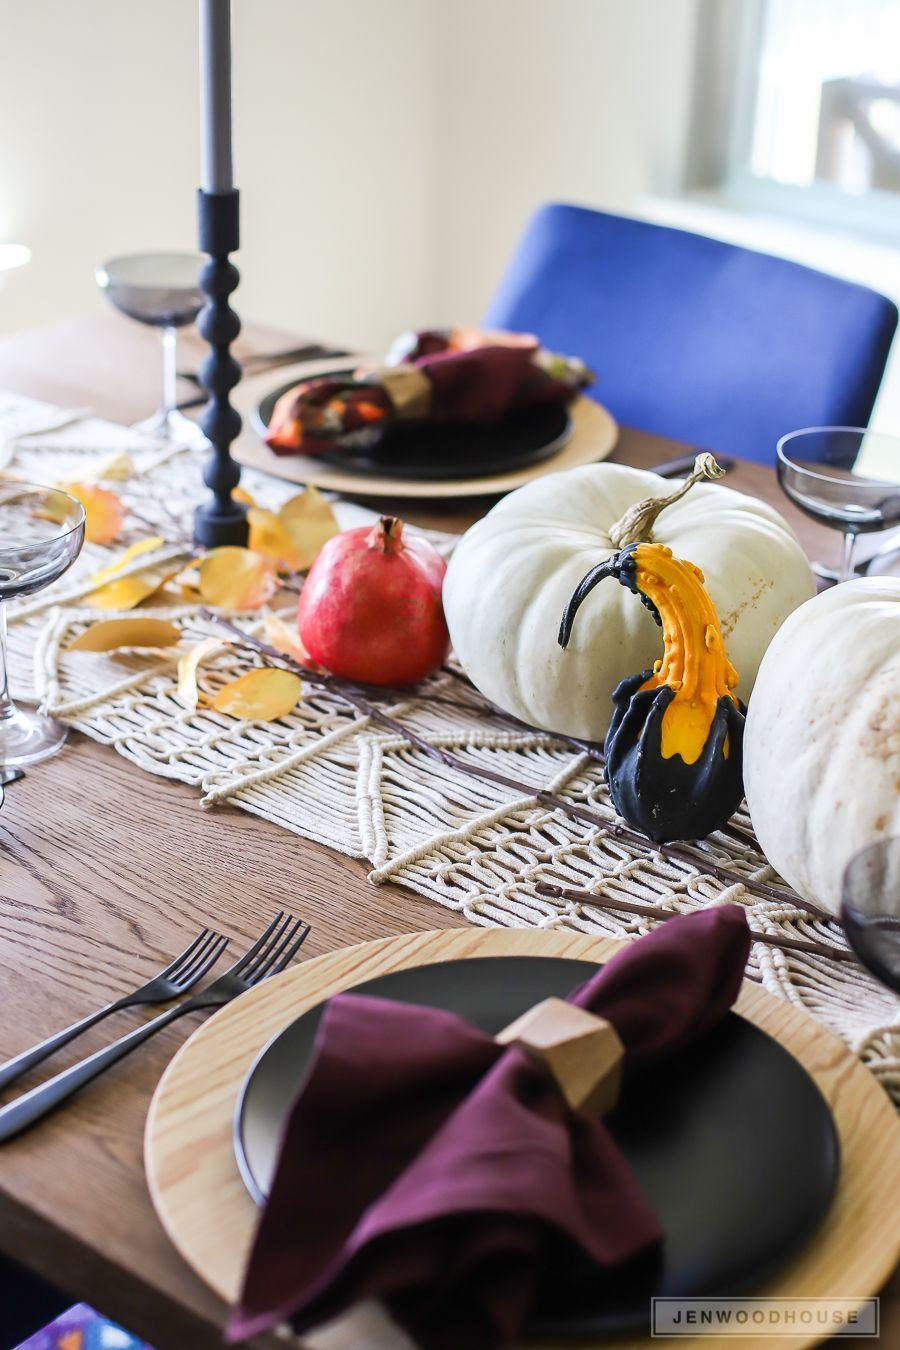 "<p>Celebrate the fruits of the season with this fun party idea! (Yes, squash and gourds are indeed fruit.) Try serving only squash and <a href=""https://www.countryliving.com/food-drinks/g619/our-best-pumpkin-recipes-1008/"" rel=""nofollow noopener"" target=""_blank"" data-ylk=""slk:pumpkin recipes"" class=""link rapid-noclick-resp"">pumpkin recipes</a>, or recipes that at least feature squash as a main ingredient, and of course, decorate your table to the nines with a bountiful harvest of the same stuff.</p><p><strong>Get the tutorial at <a href=""https://jenwoodhouse.com/fall-2017-home-tour/"" rel=""nofollow noopener"" target=""_blank"" data-ylk=""slk:The House of Wood"" class=""link rapid-noclick-resp"">The House of Wood</a>.</strong></p><p><a class=""link rapid-noclick-resp"" href=""https://www.amazon.com/Factory-Direct-Craft-Artificial-Thanksgiving/dp/B01KGCGQAE?tag=syn-yahoo-20&ascsubtag=%5Bartid%7C10050.g.4620%5Bsrc%7Cyahoo-us"" rel=""nofollow noopener"" target=""_blank"" data-ylk=""slk:SHOP DECORATIVE GOURDS"">SHOP DECORATIVE GOURDS</a></p>"